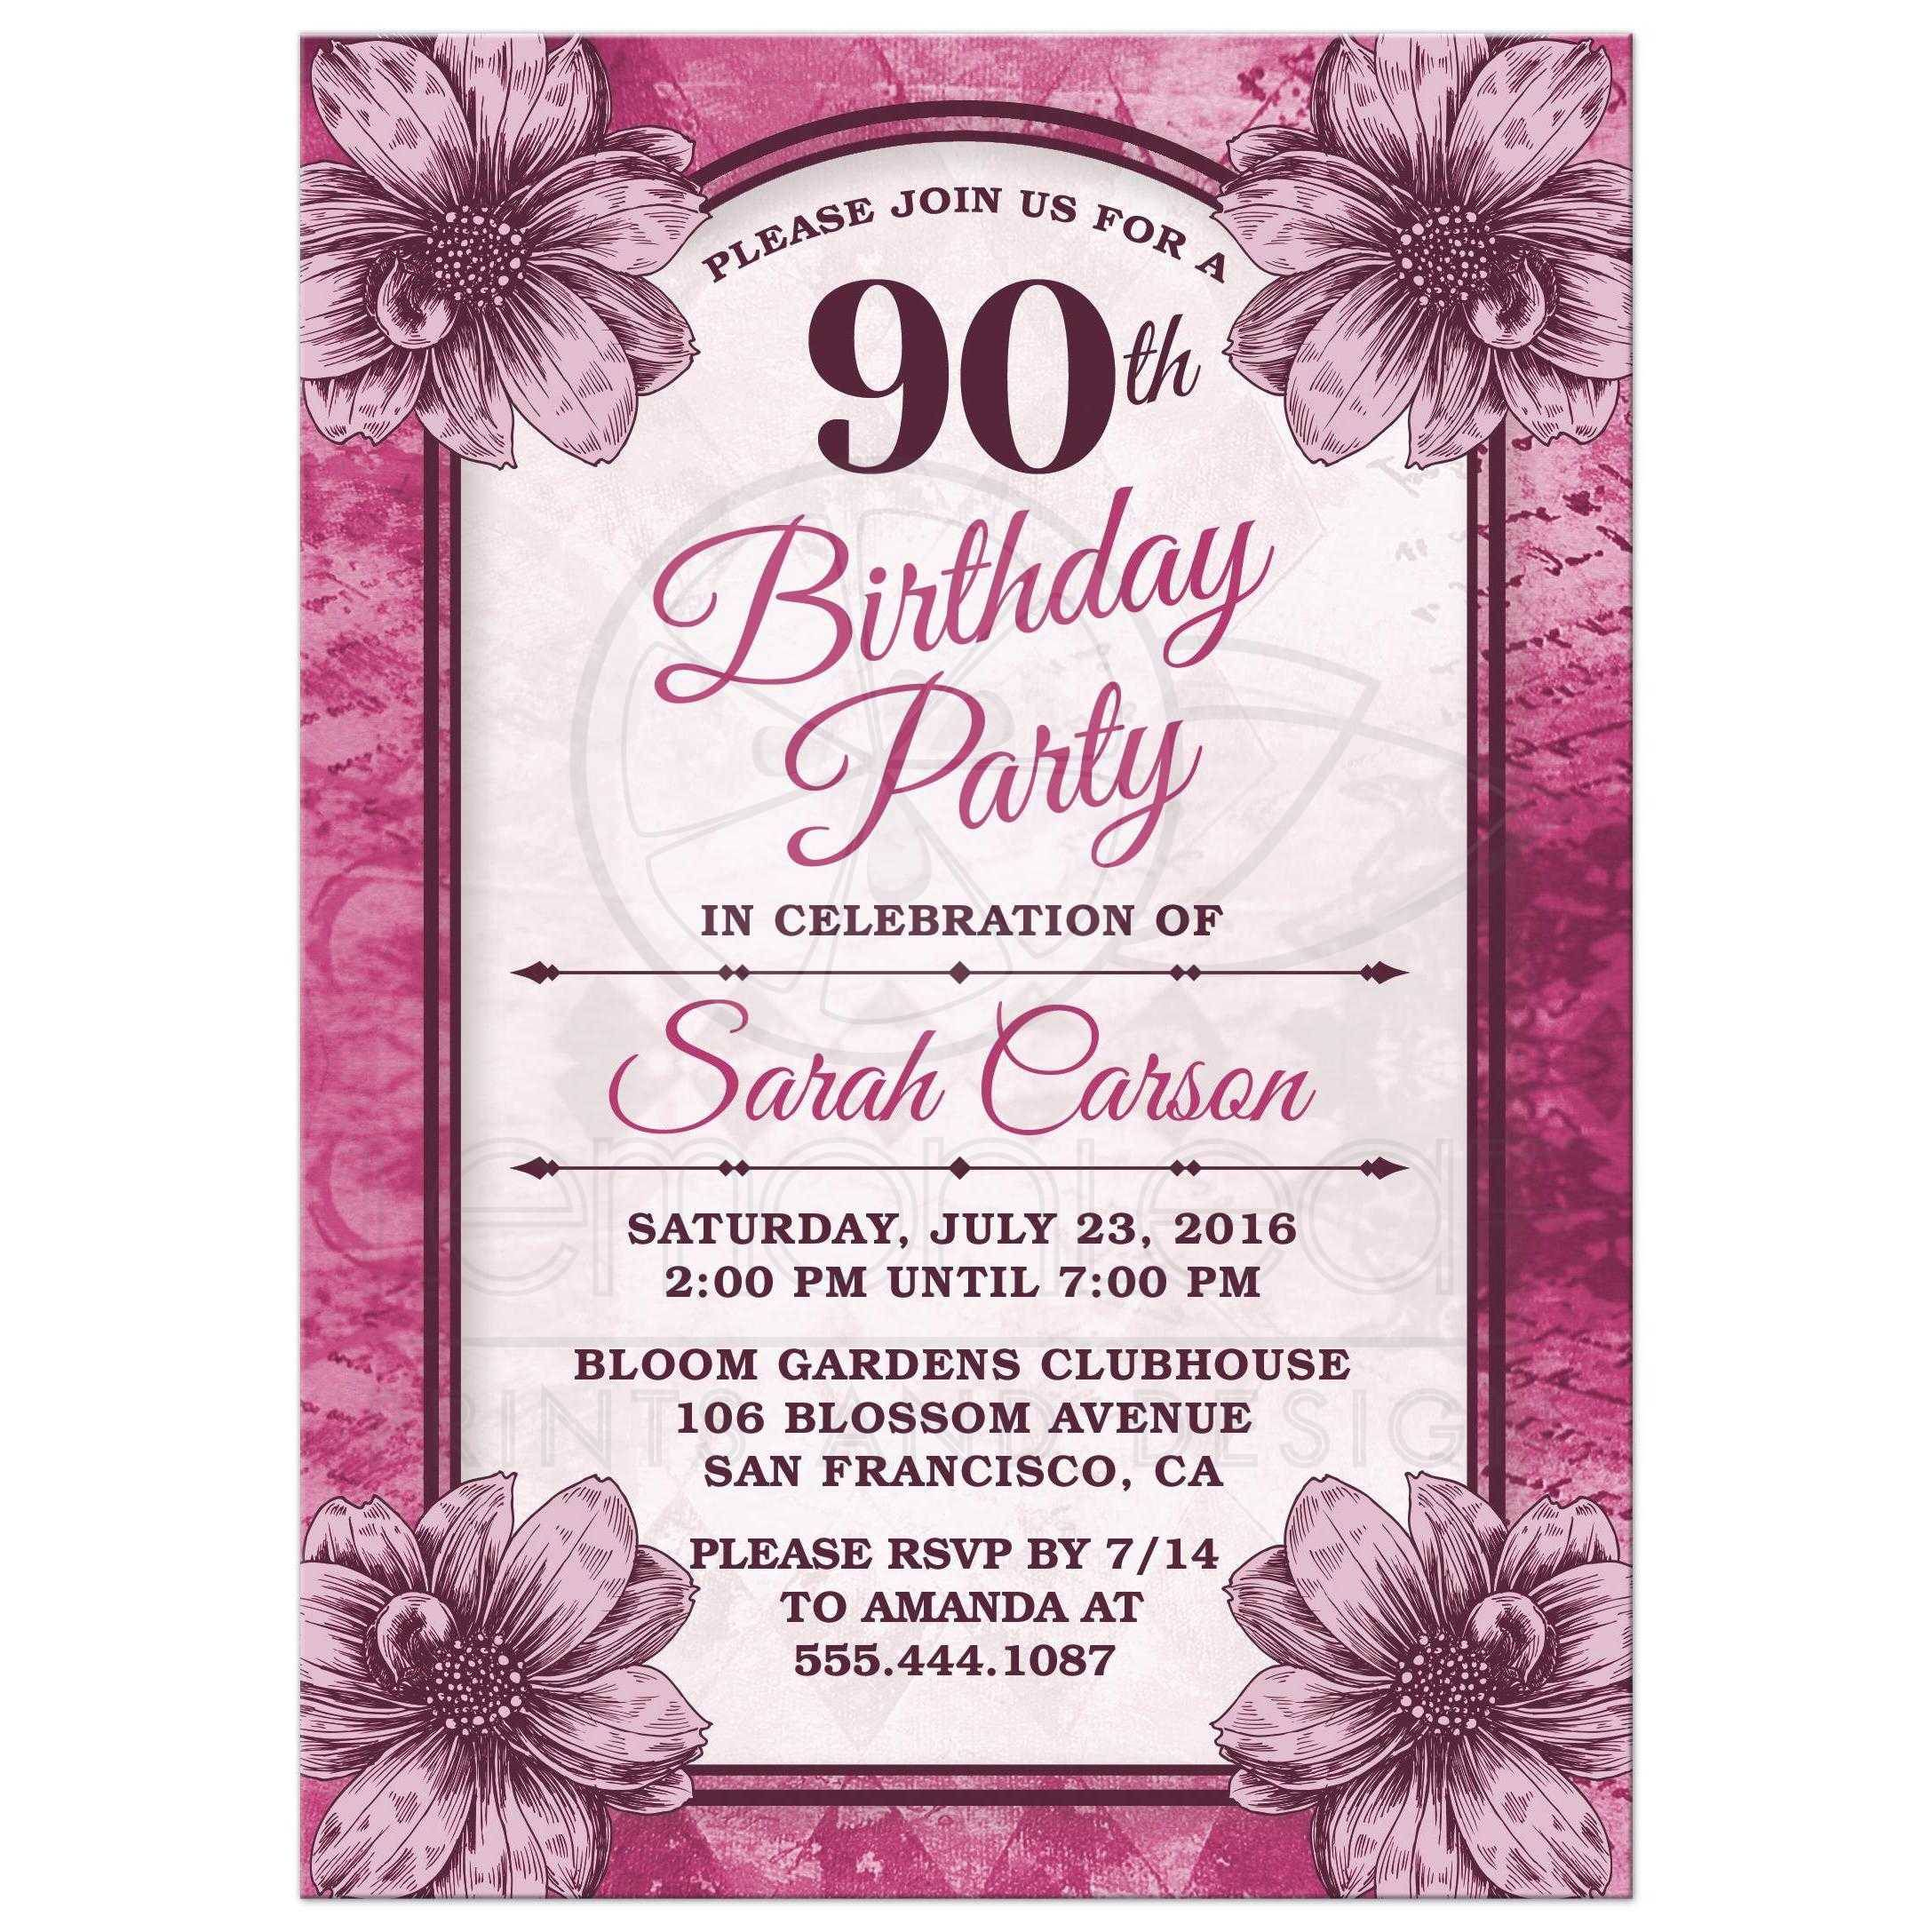 90th Birthday Party Invitations Templates Free  Free Birthday Party Invitation Templates For Word